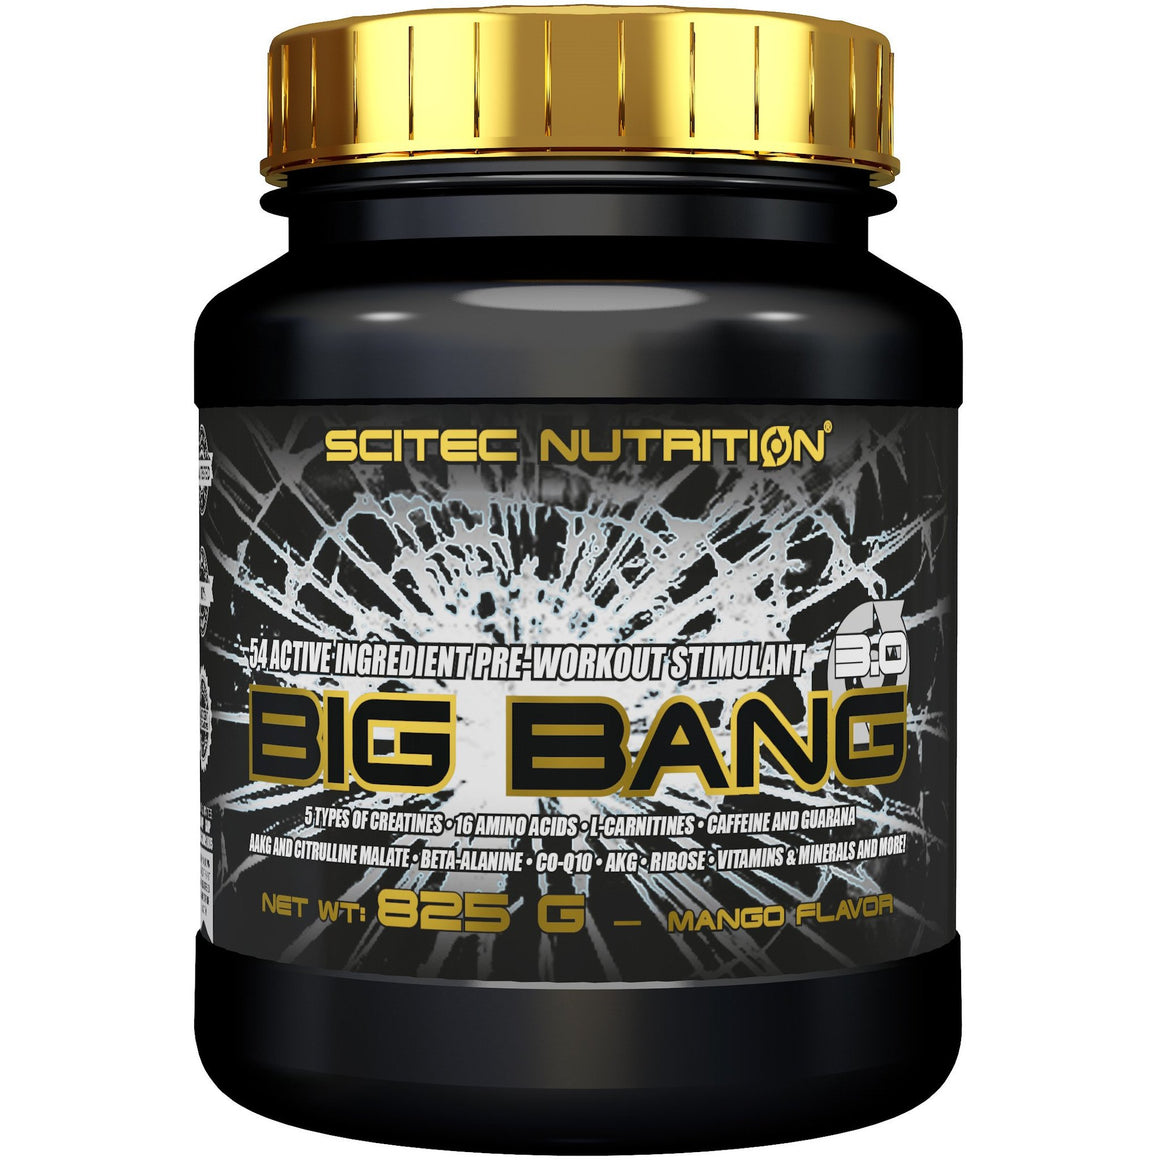 Scitec Nutrition Big Bang 3.0 Pre-workout